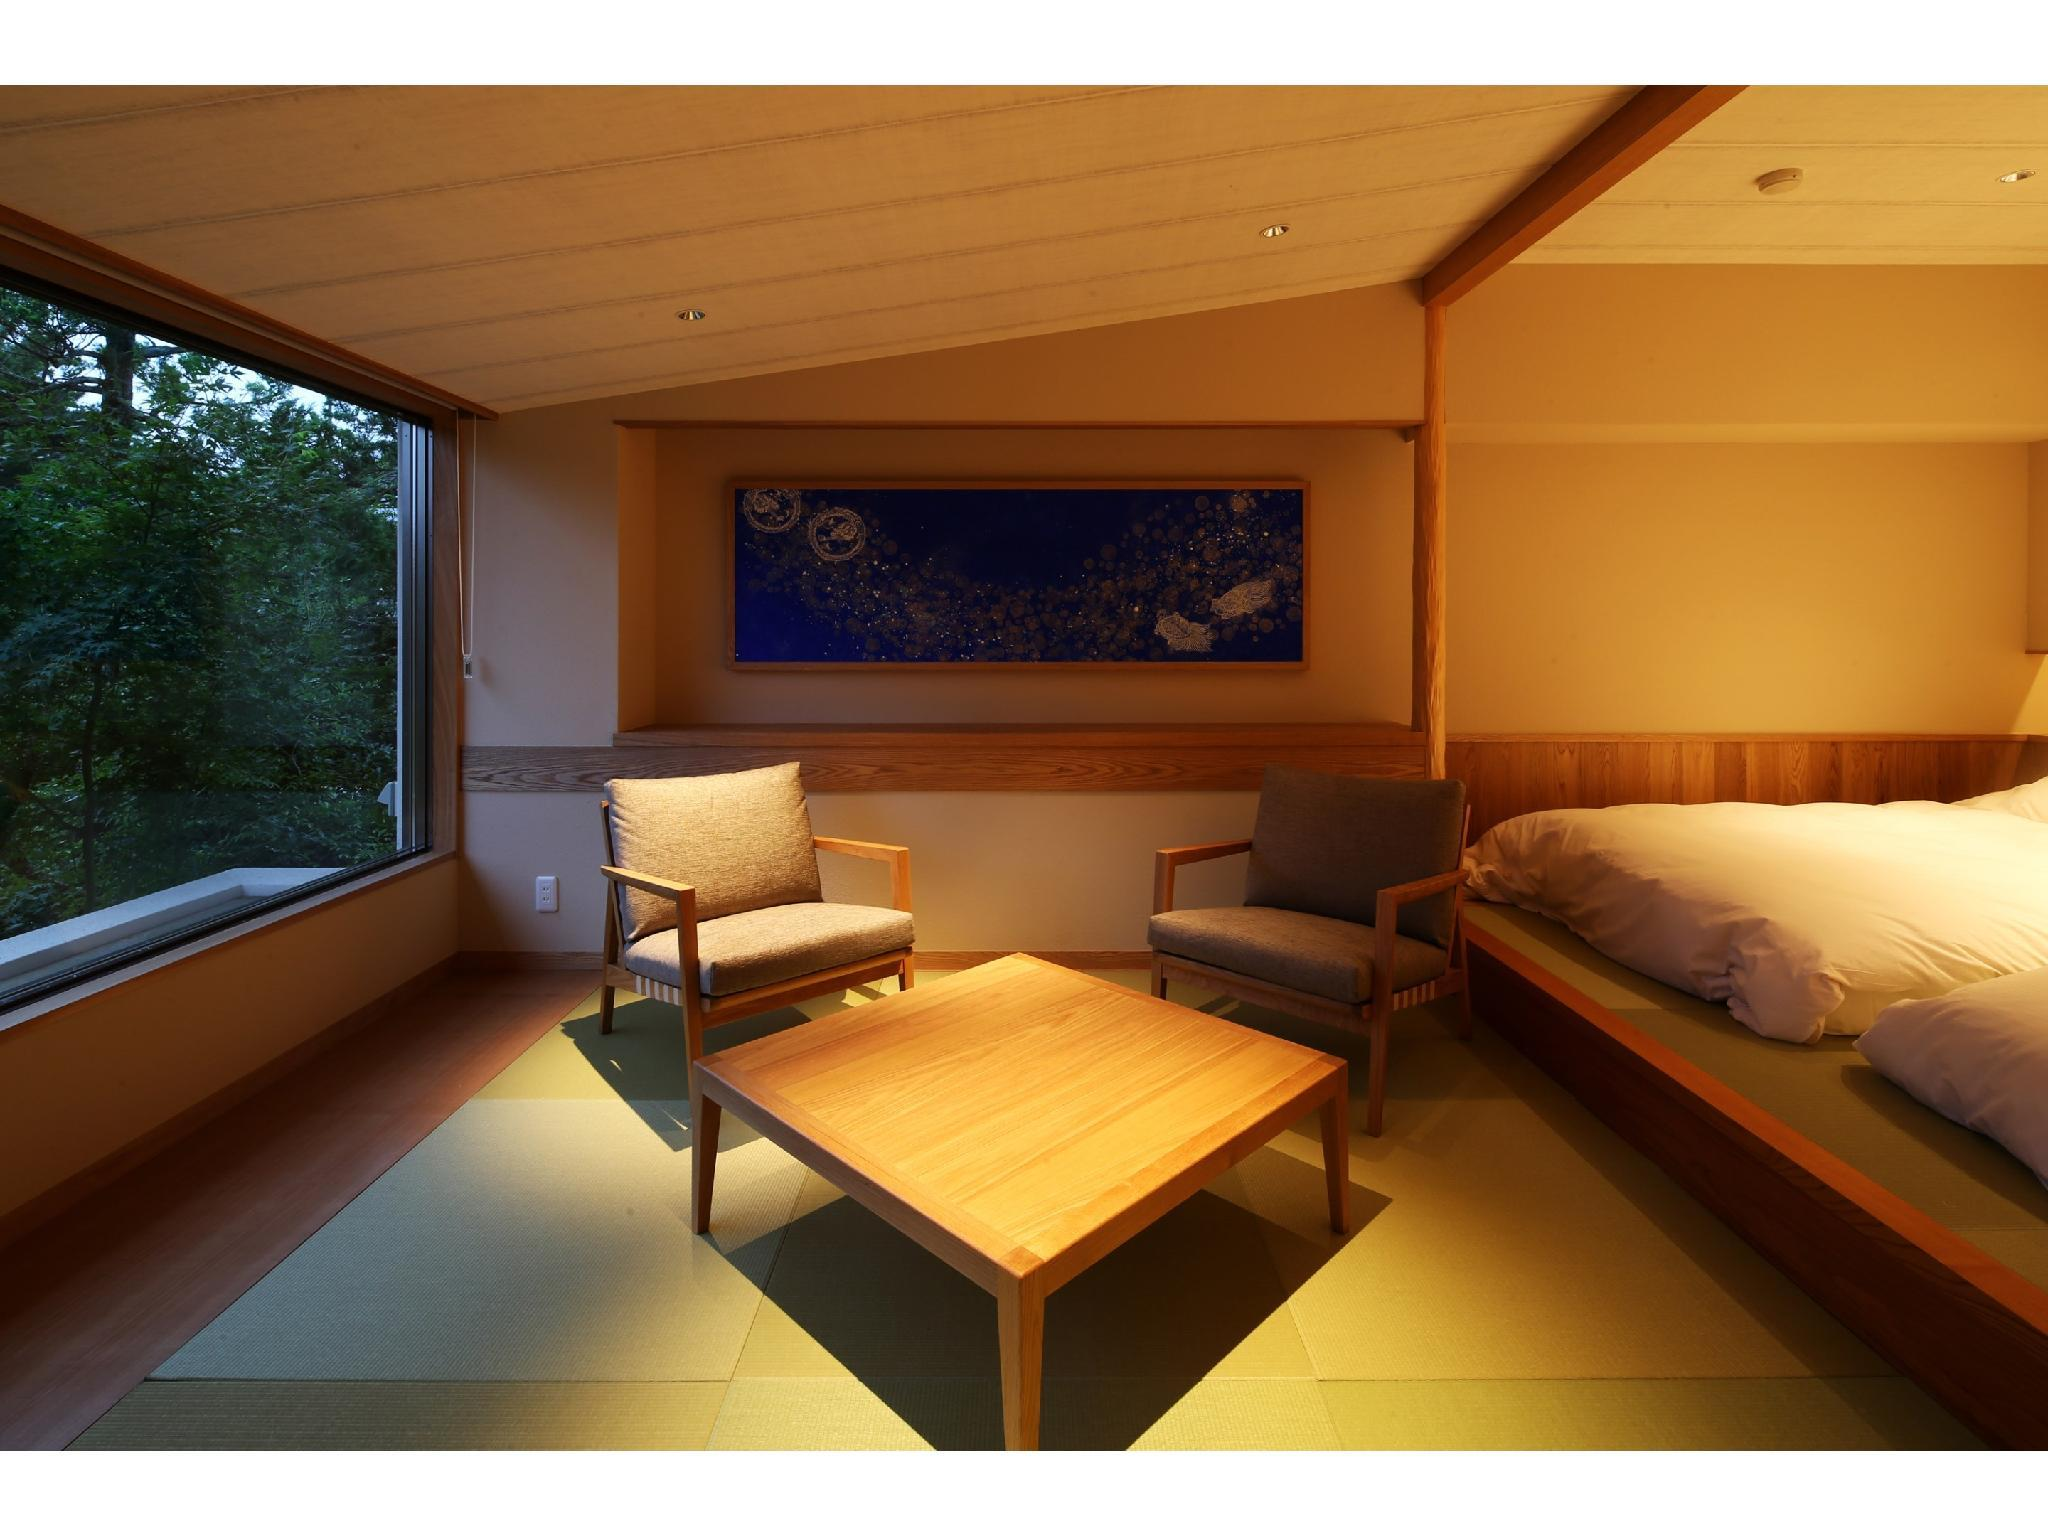 다다미 객실(MAI-NO-TO/2일본식베드) (Japanese-style Room (2 Japanese Beds, Mai no To Wing))